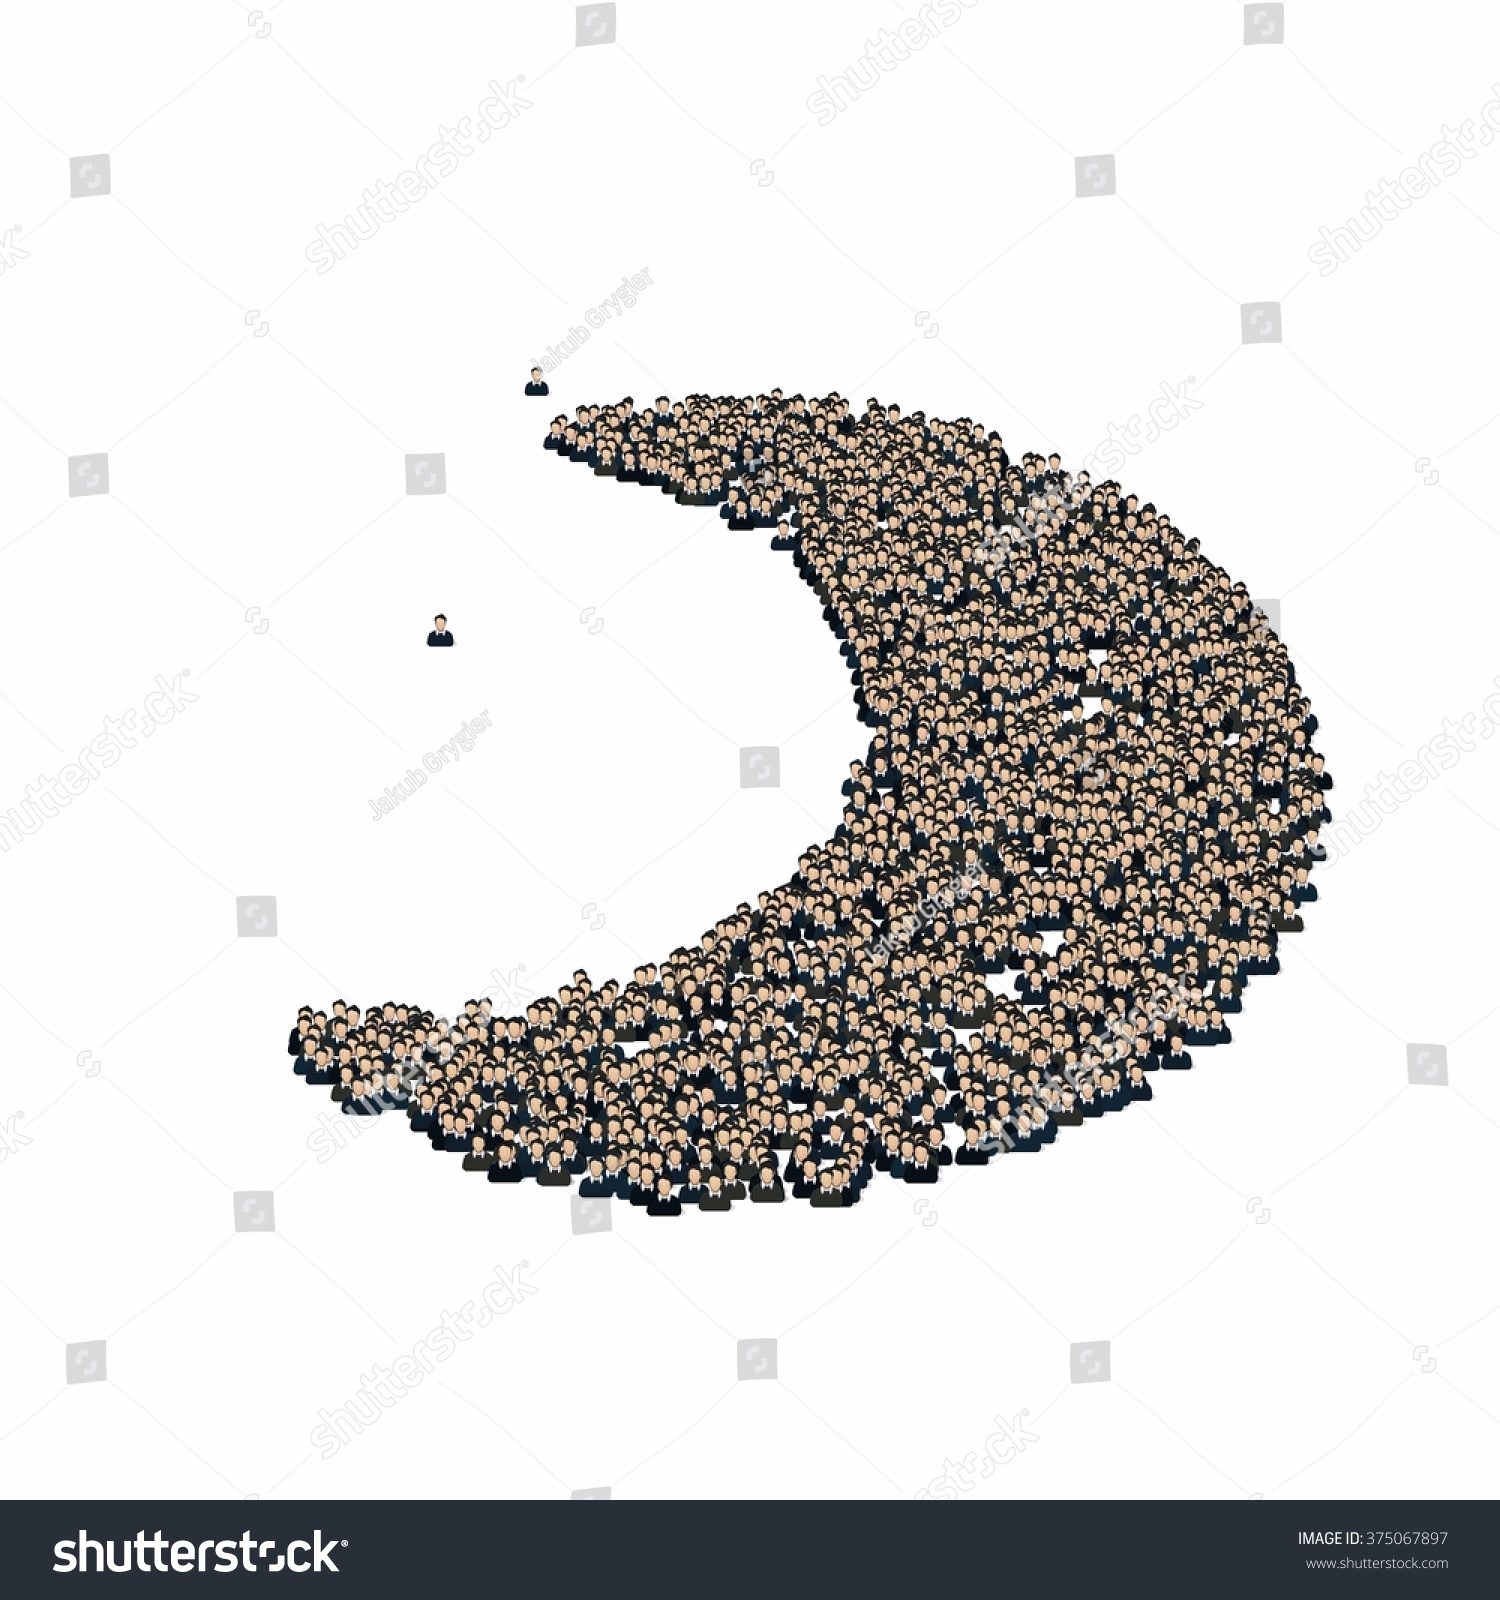 Moon crescent symbol glyph out tiny stock illustration 375067897 moon crescent symbol glyph out of tiny textures particles representing human and his emotions buycottarizona Image collections